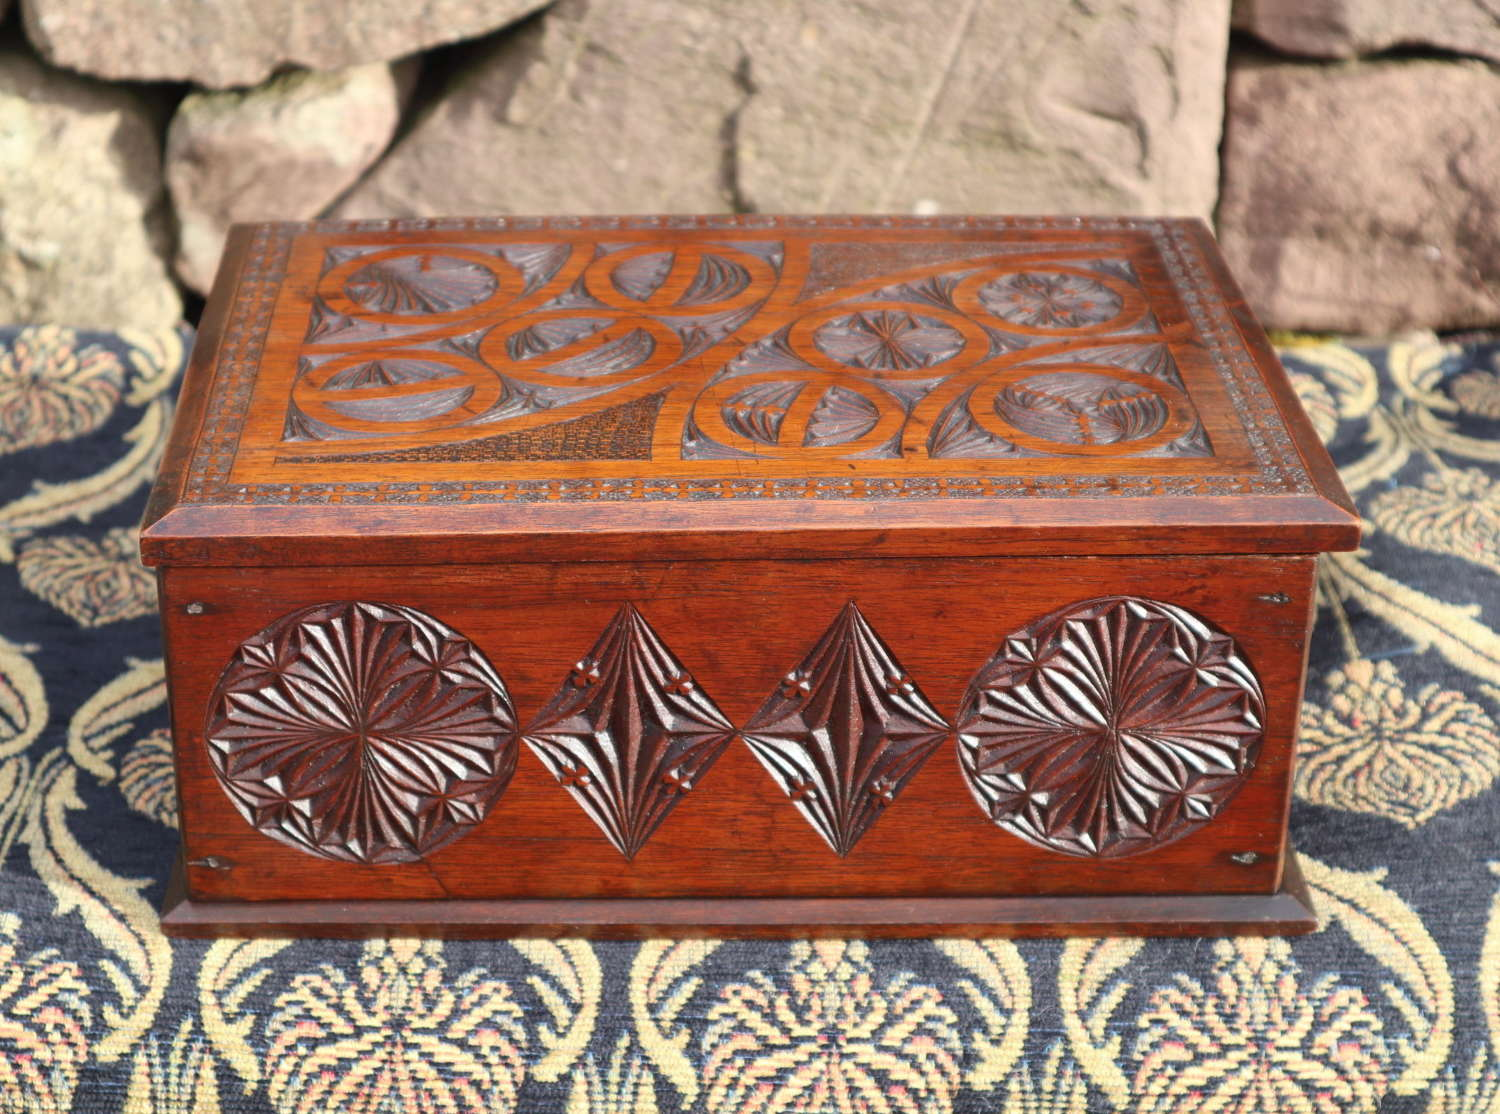 Arts & Crafts / Gothic geometric carved walnut writing box c.1880.